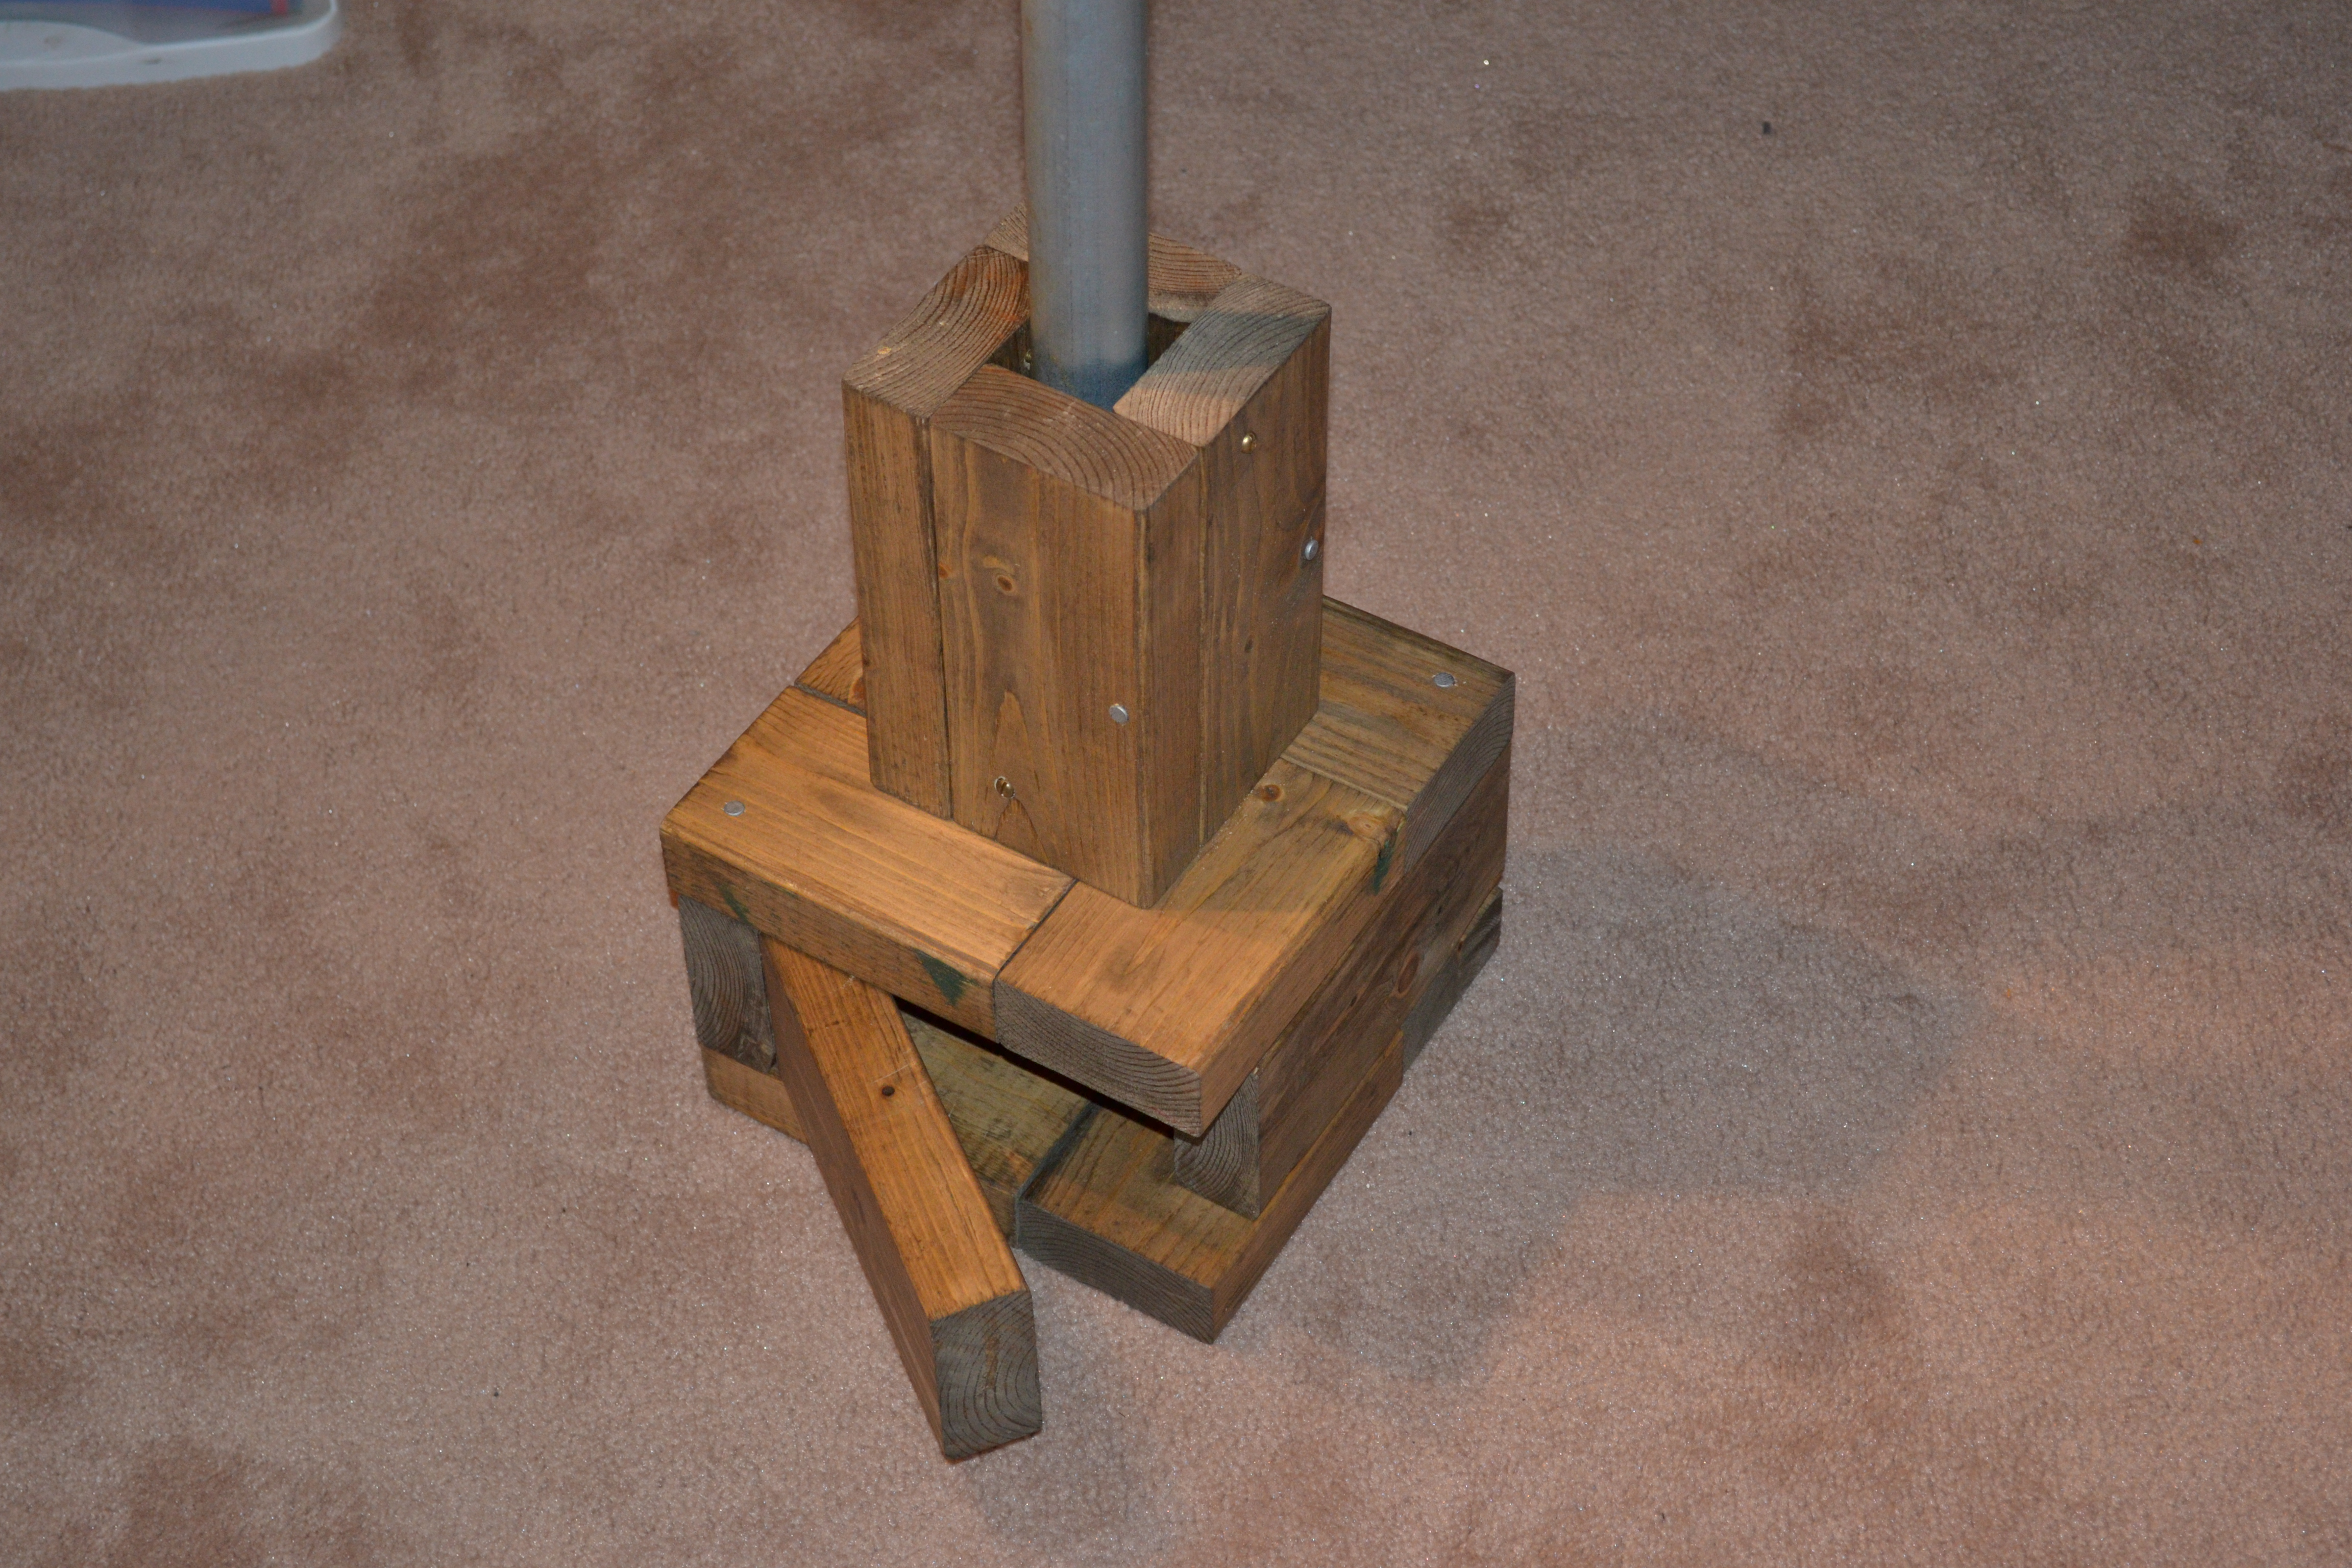 Picture of Lamp Base